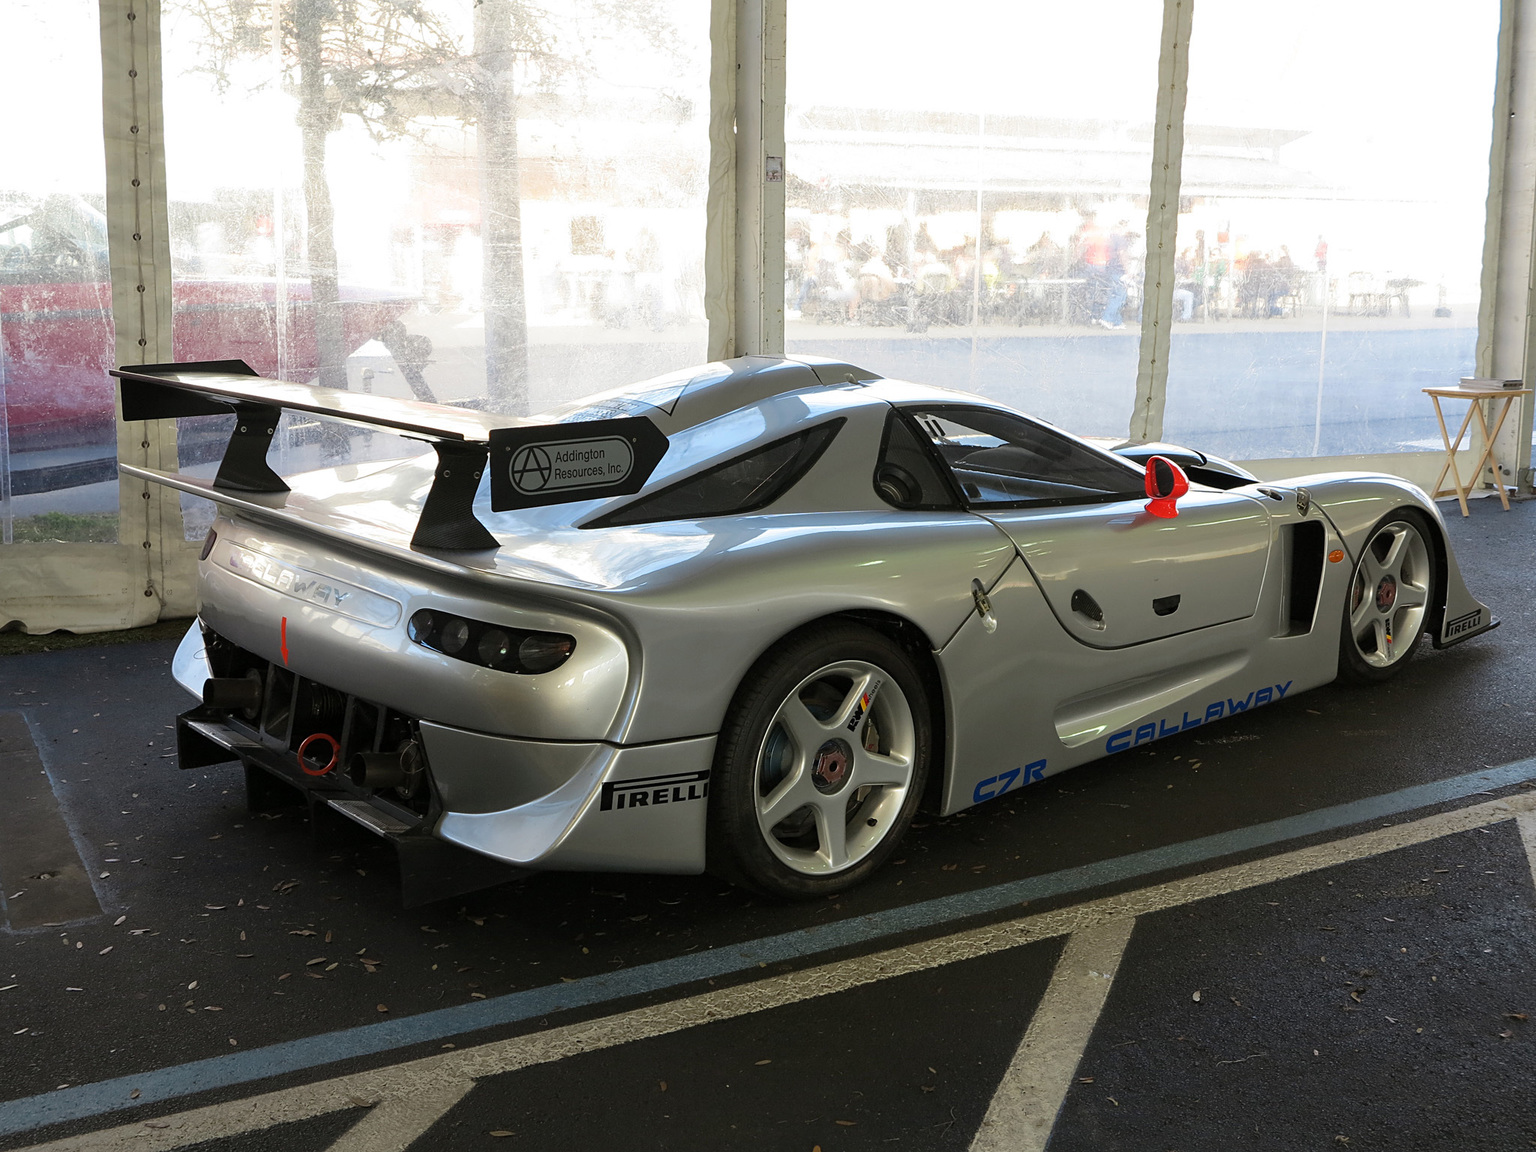 1997 Callaway C7r Callaway Supercars HD Wallpapers Download free images and photos [musssic.tk]